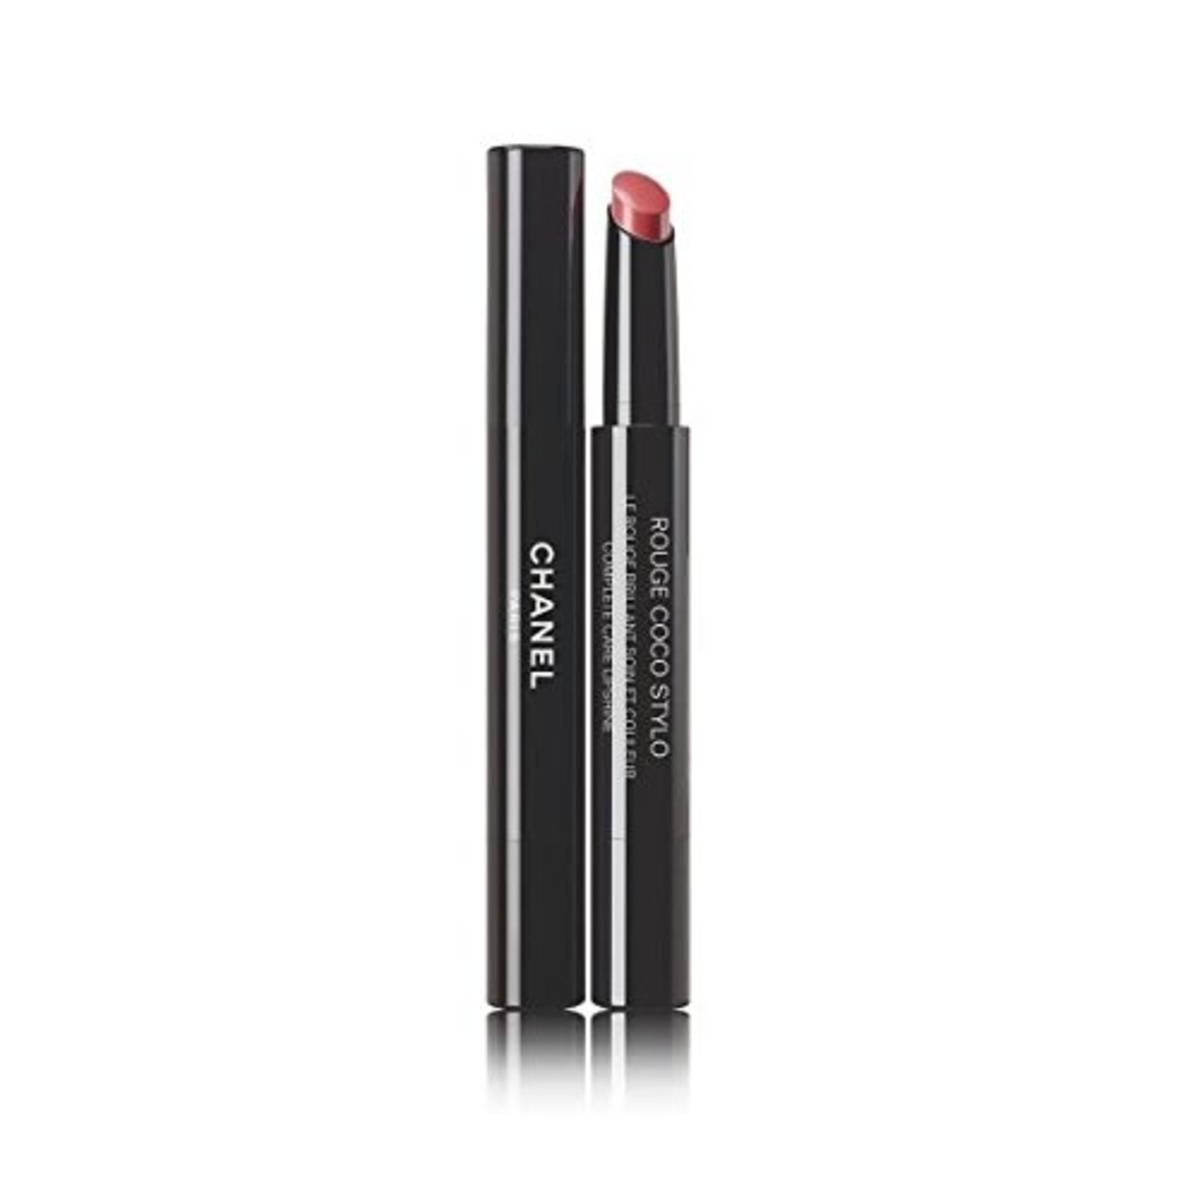 Rouge Coco Stylo Lipstick 2g #216 [Parallel Import]